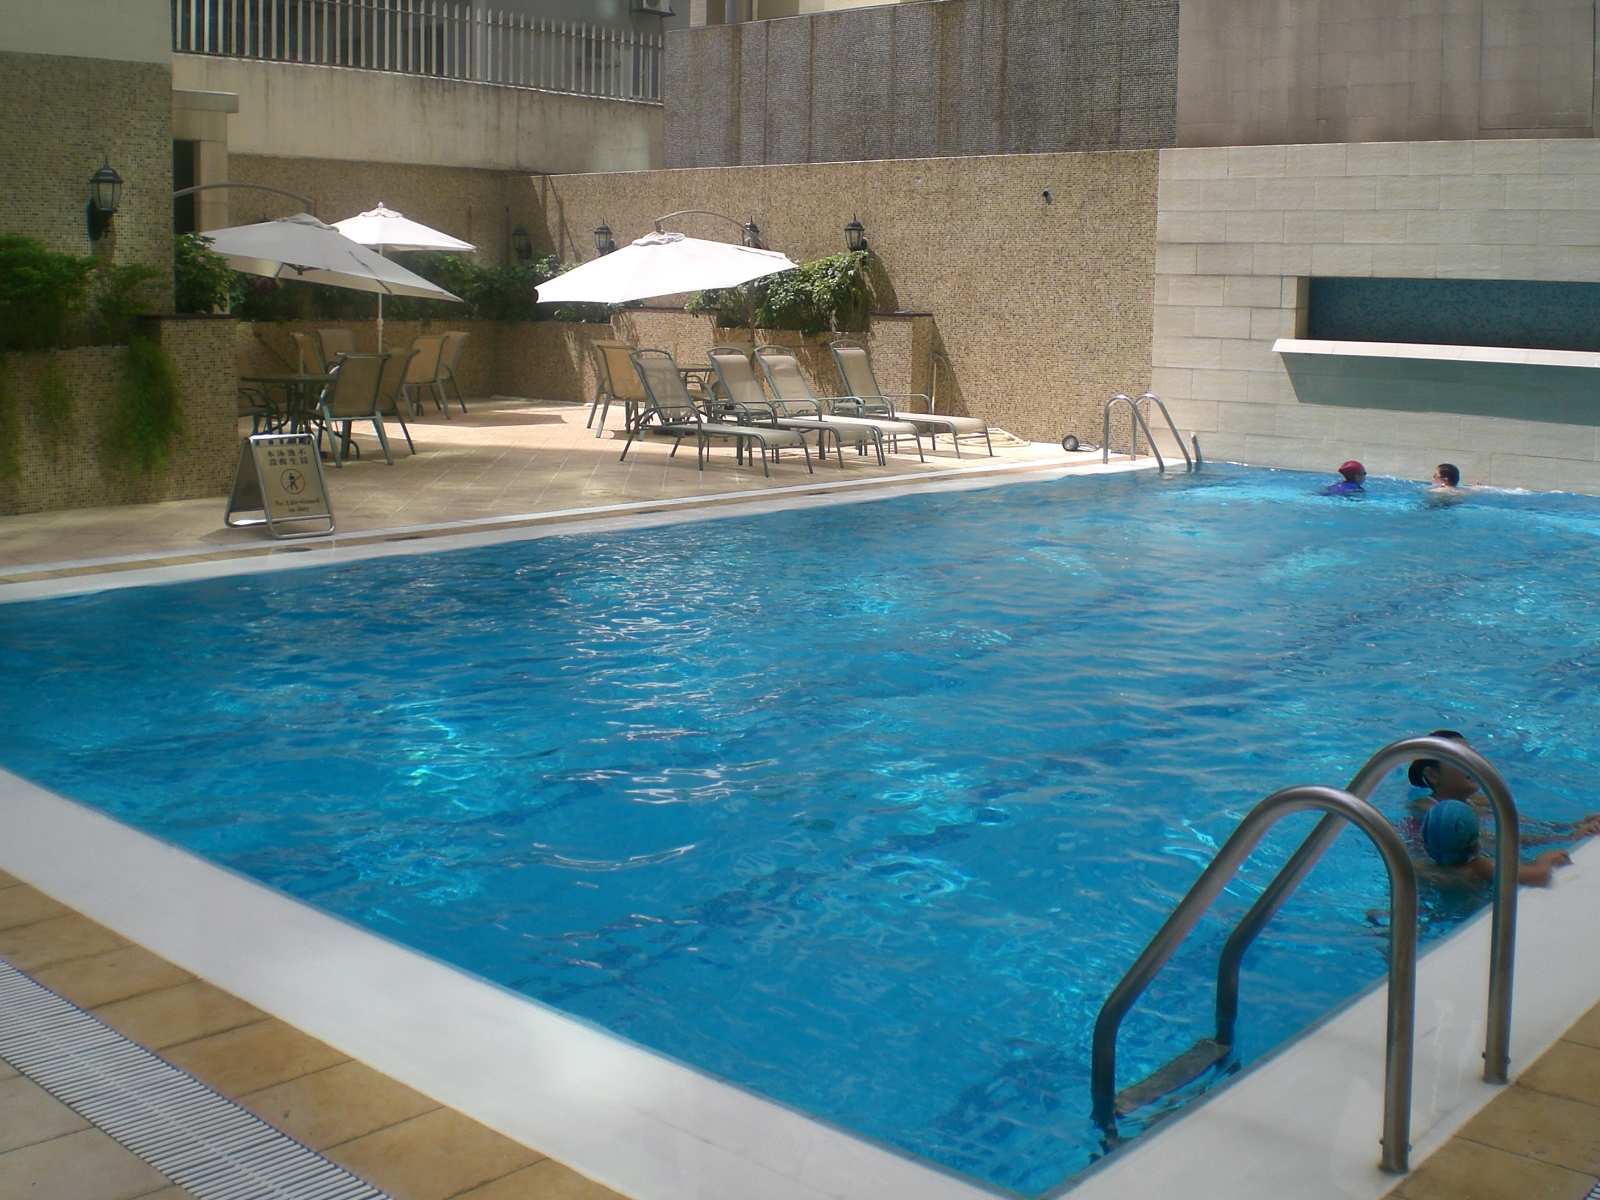 File:Macau Grandview Hotel Swimming Pool Mo707.JPG - Wikimedia Commons